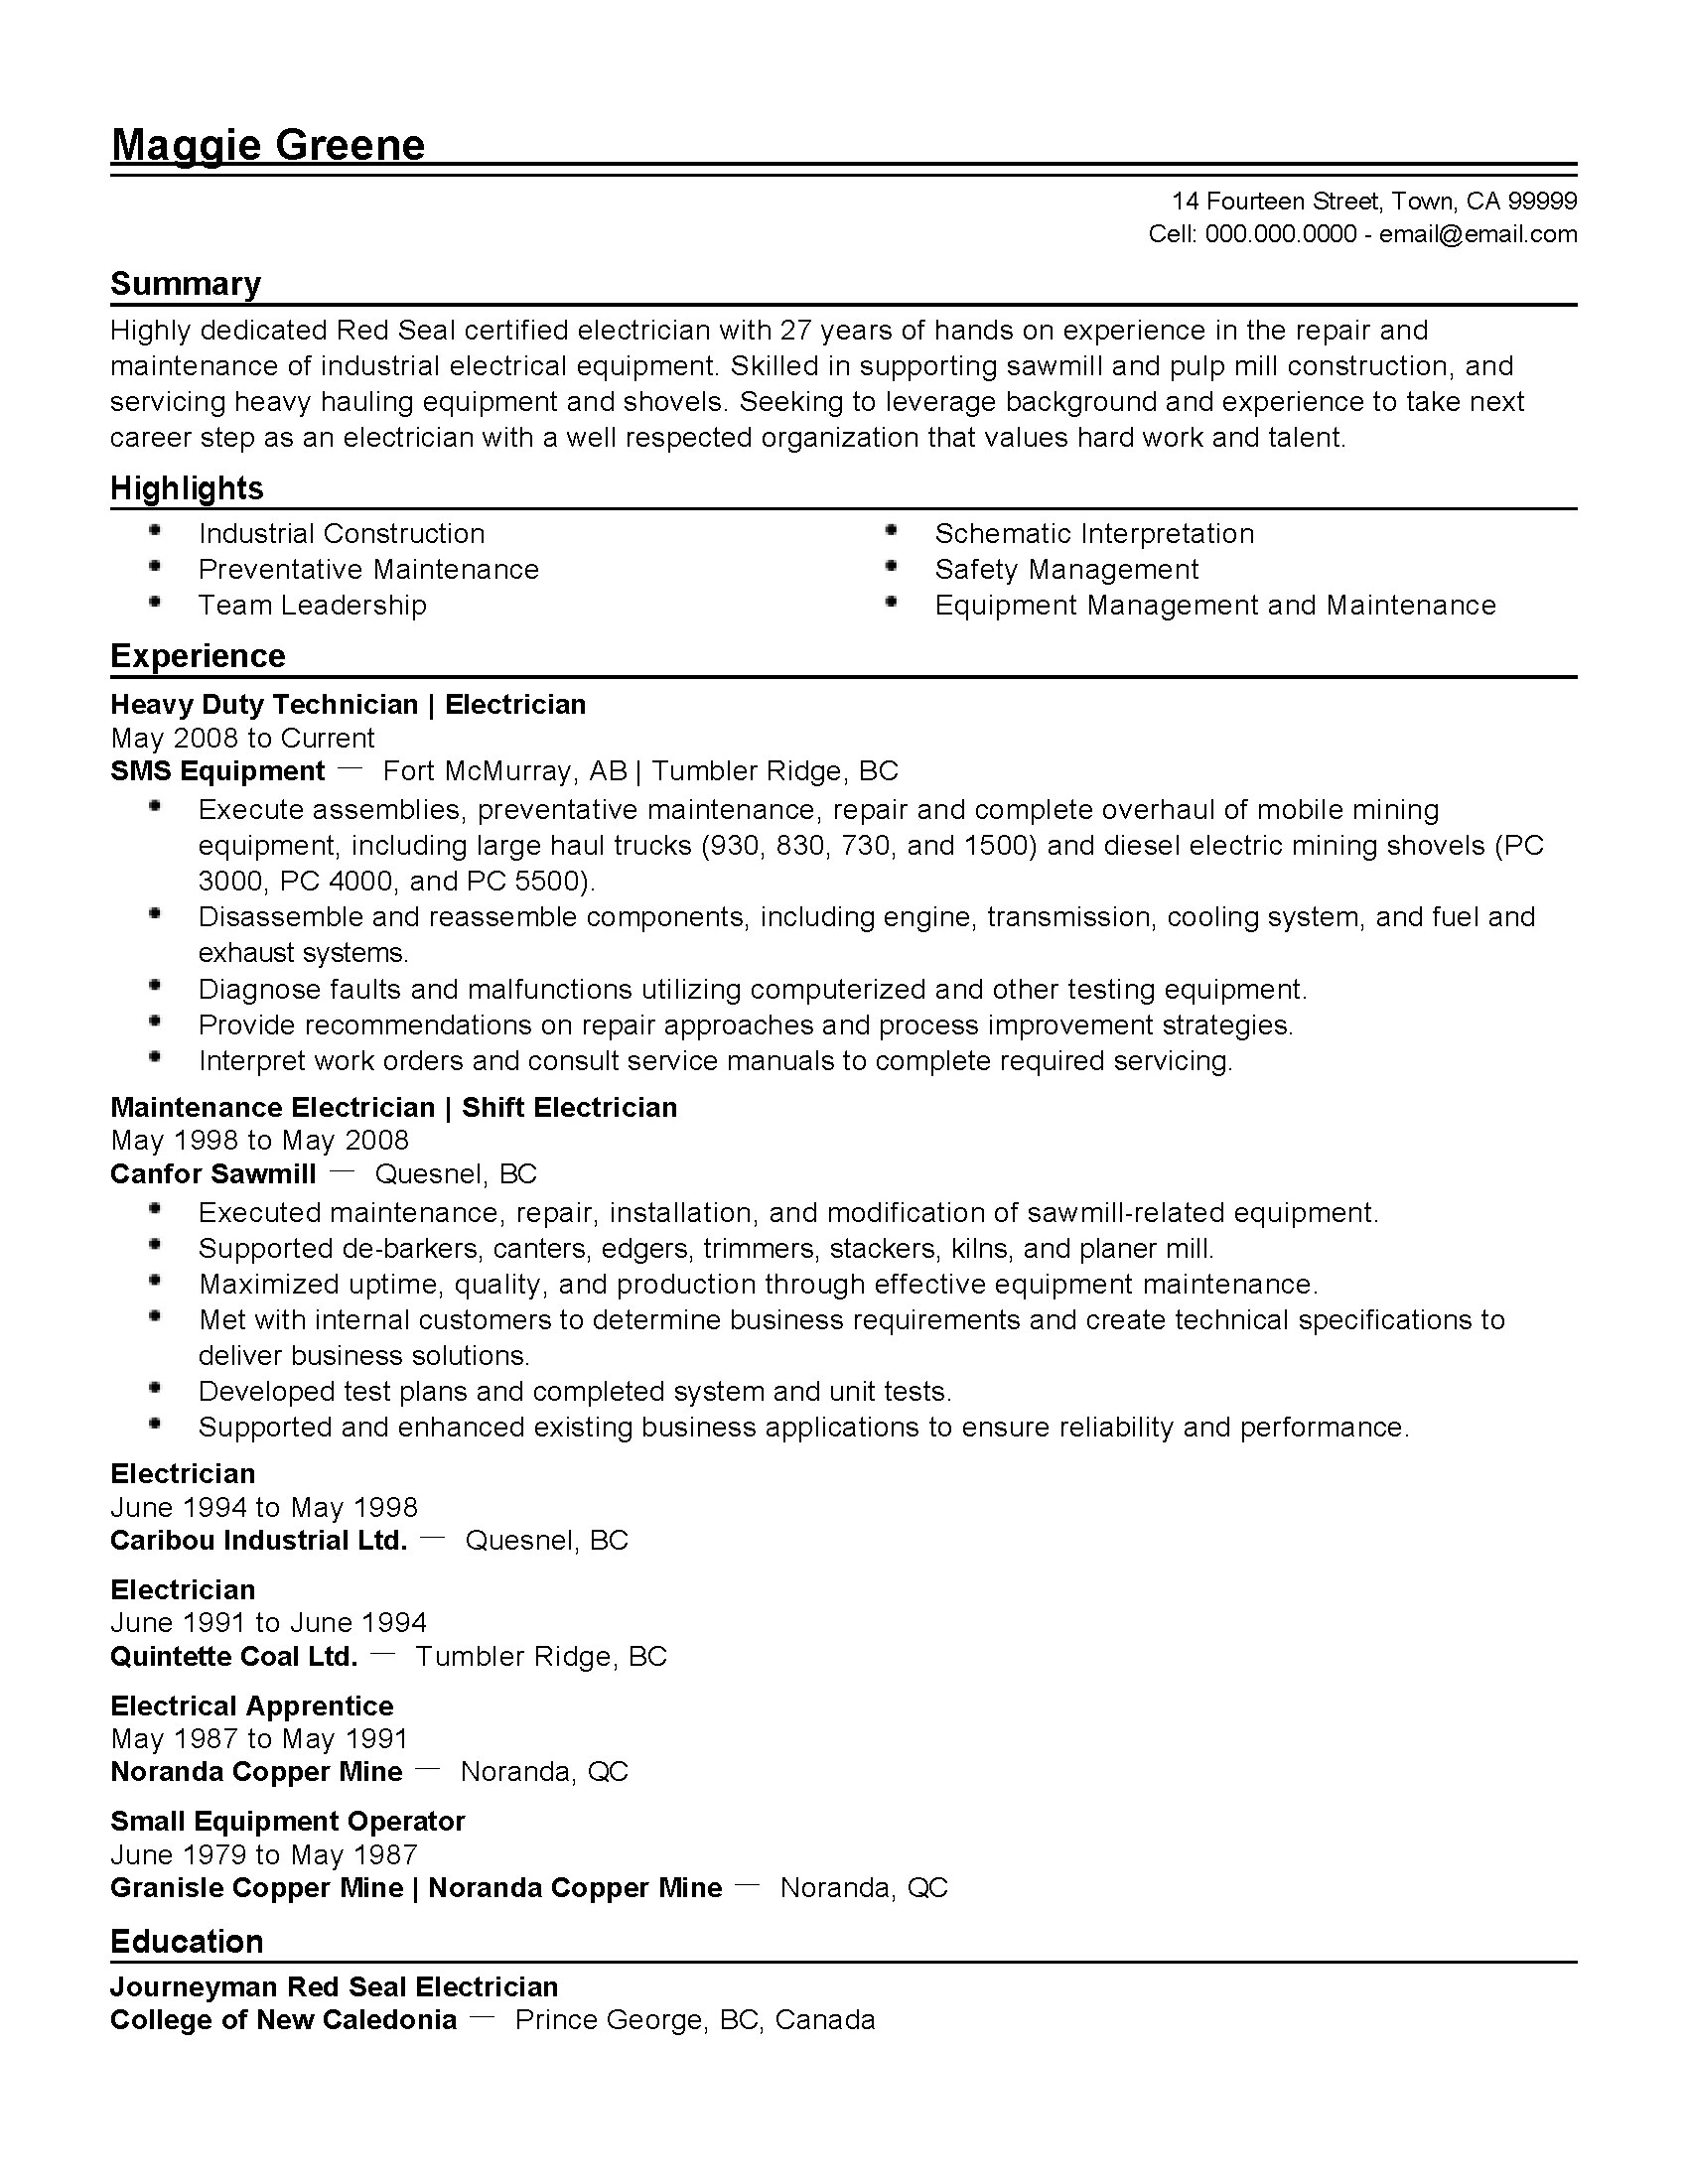 Electrical Resume Format Professional Industrial Electrician Templates To Showcase